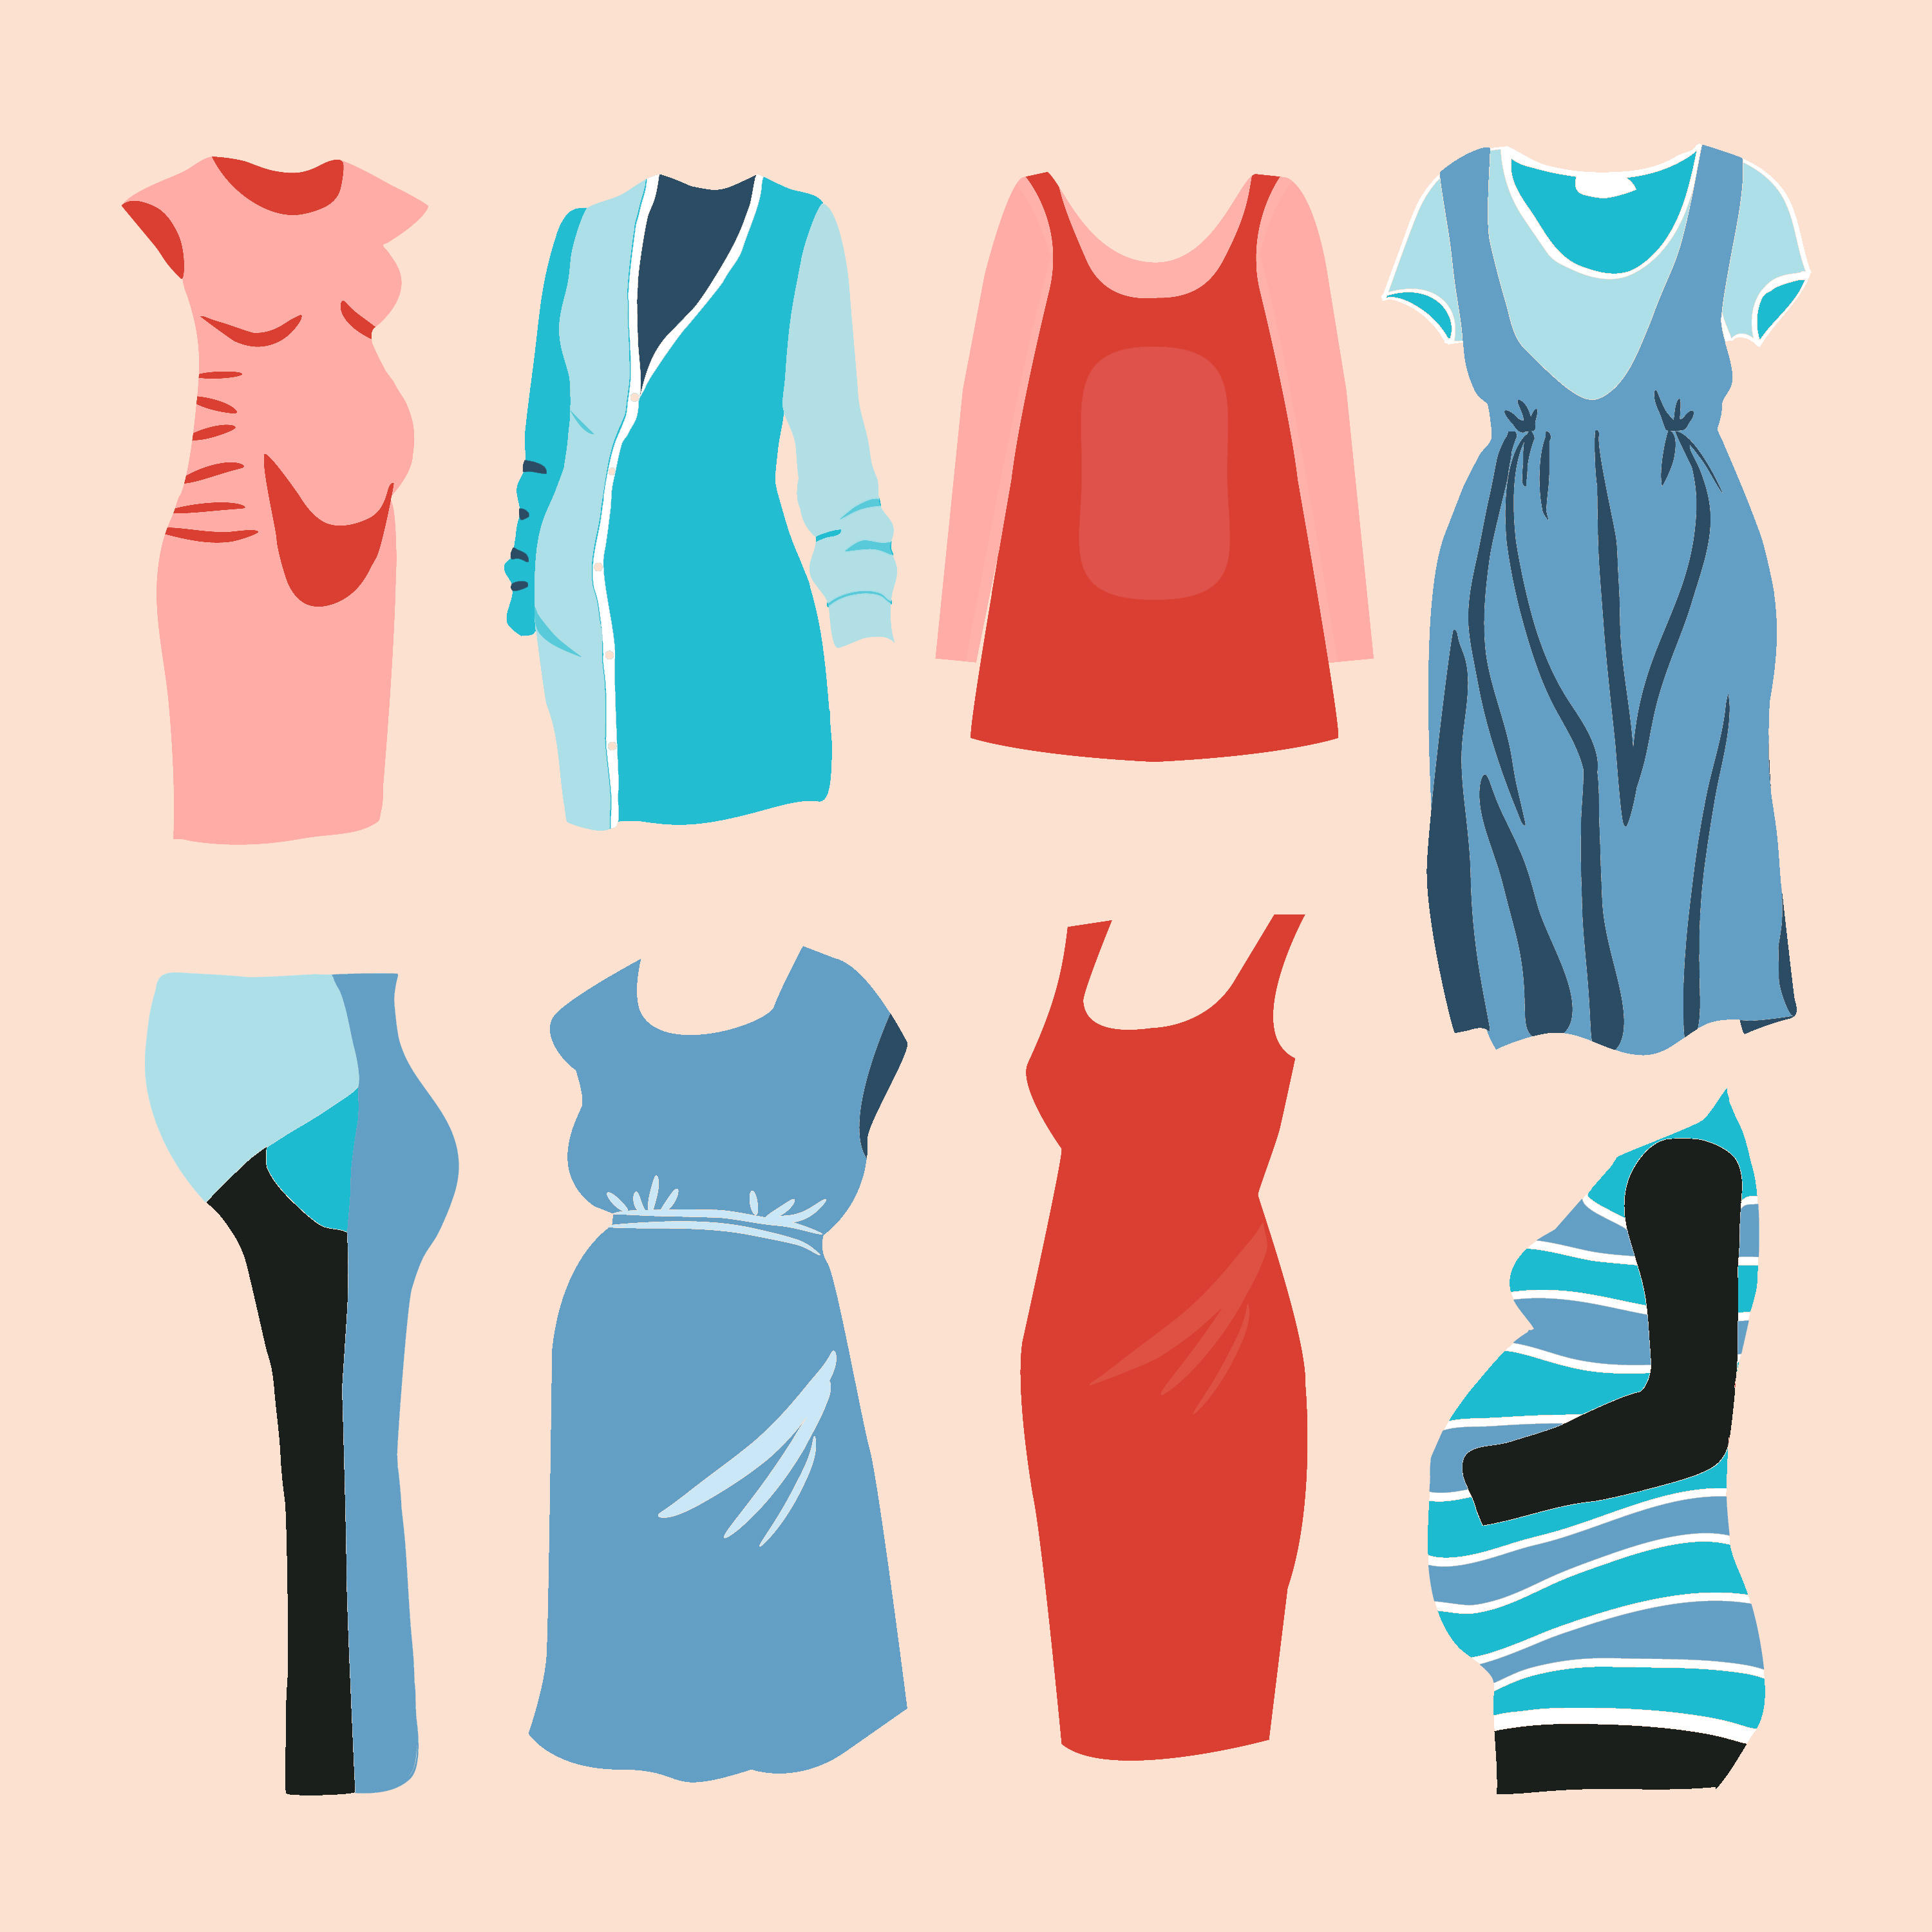 illustrations of maternity outfits